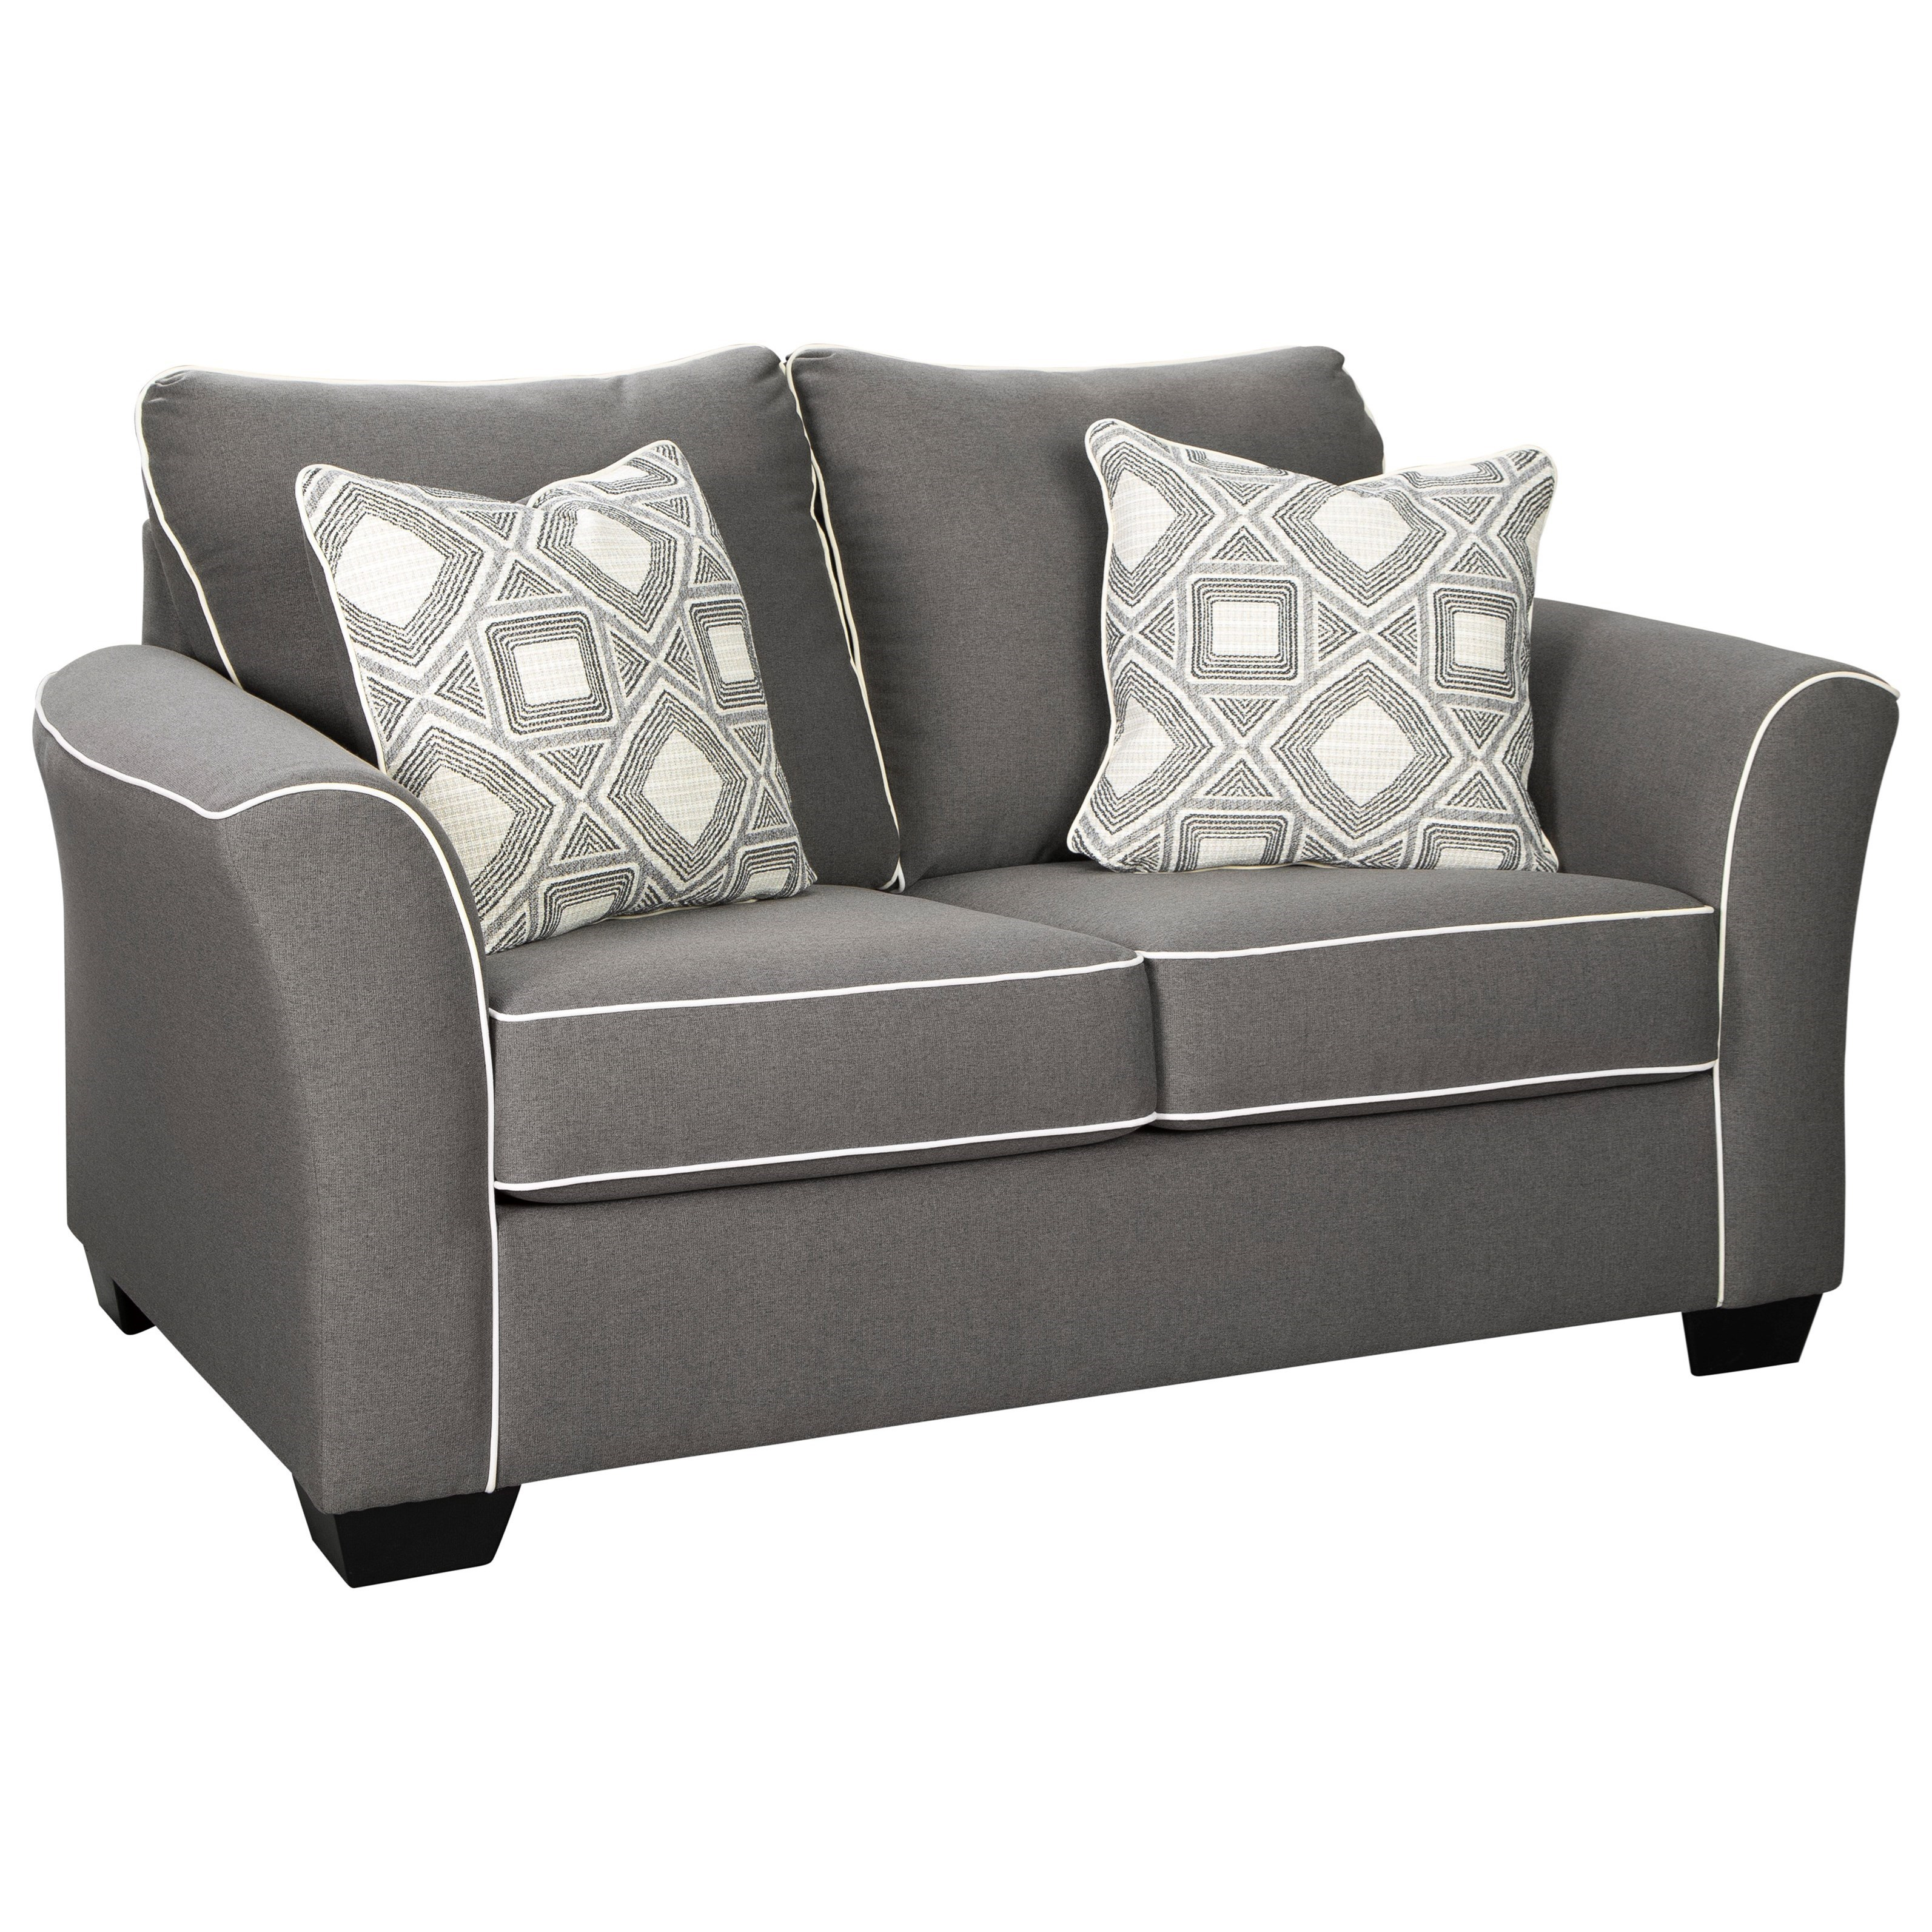 Domani Loveseat by Signature at Walker's Furniture